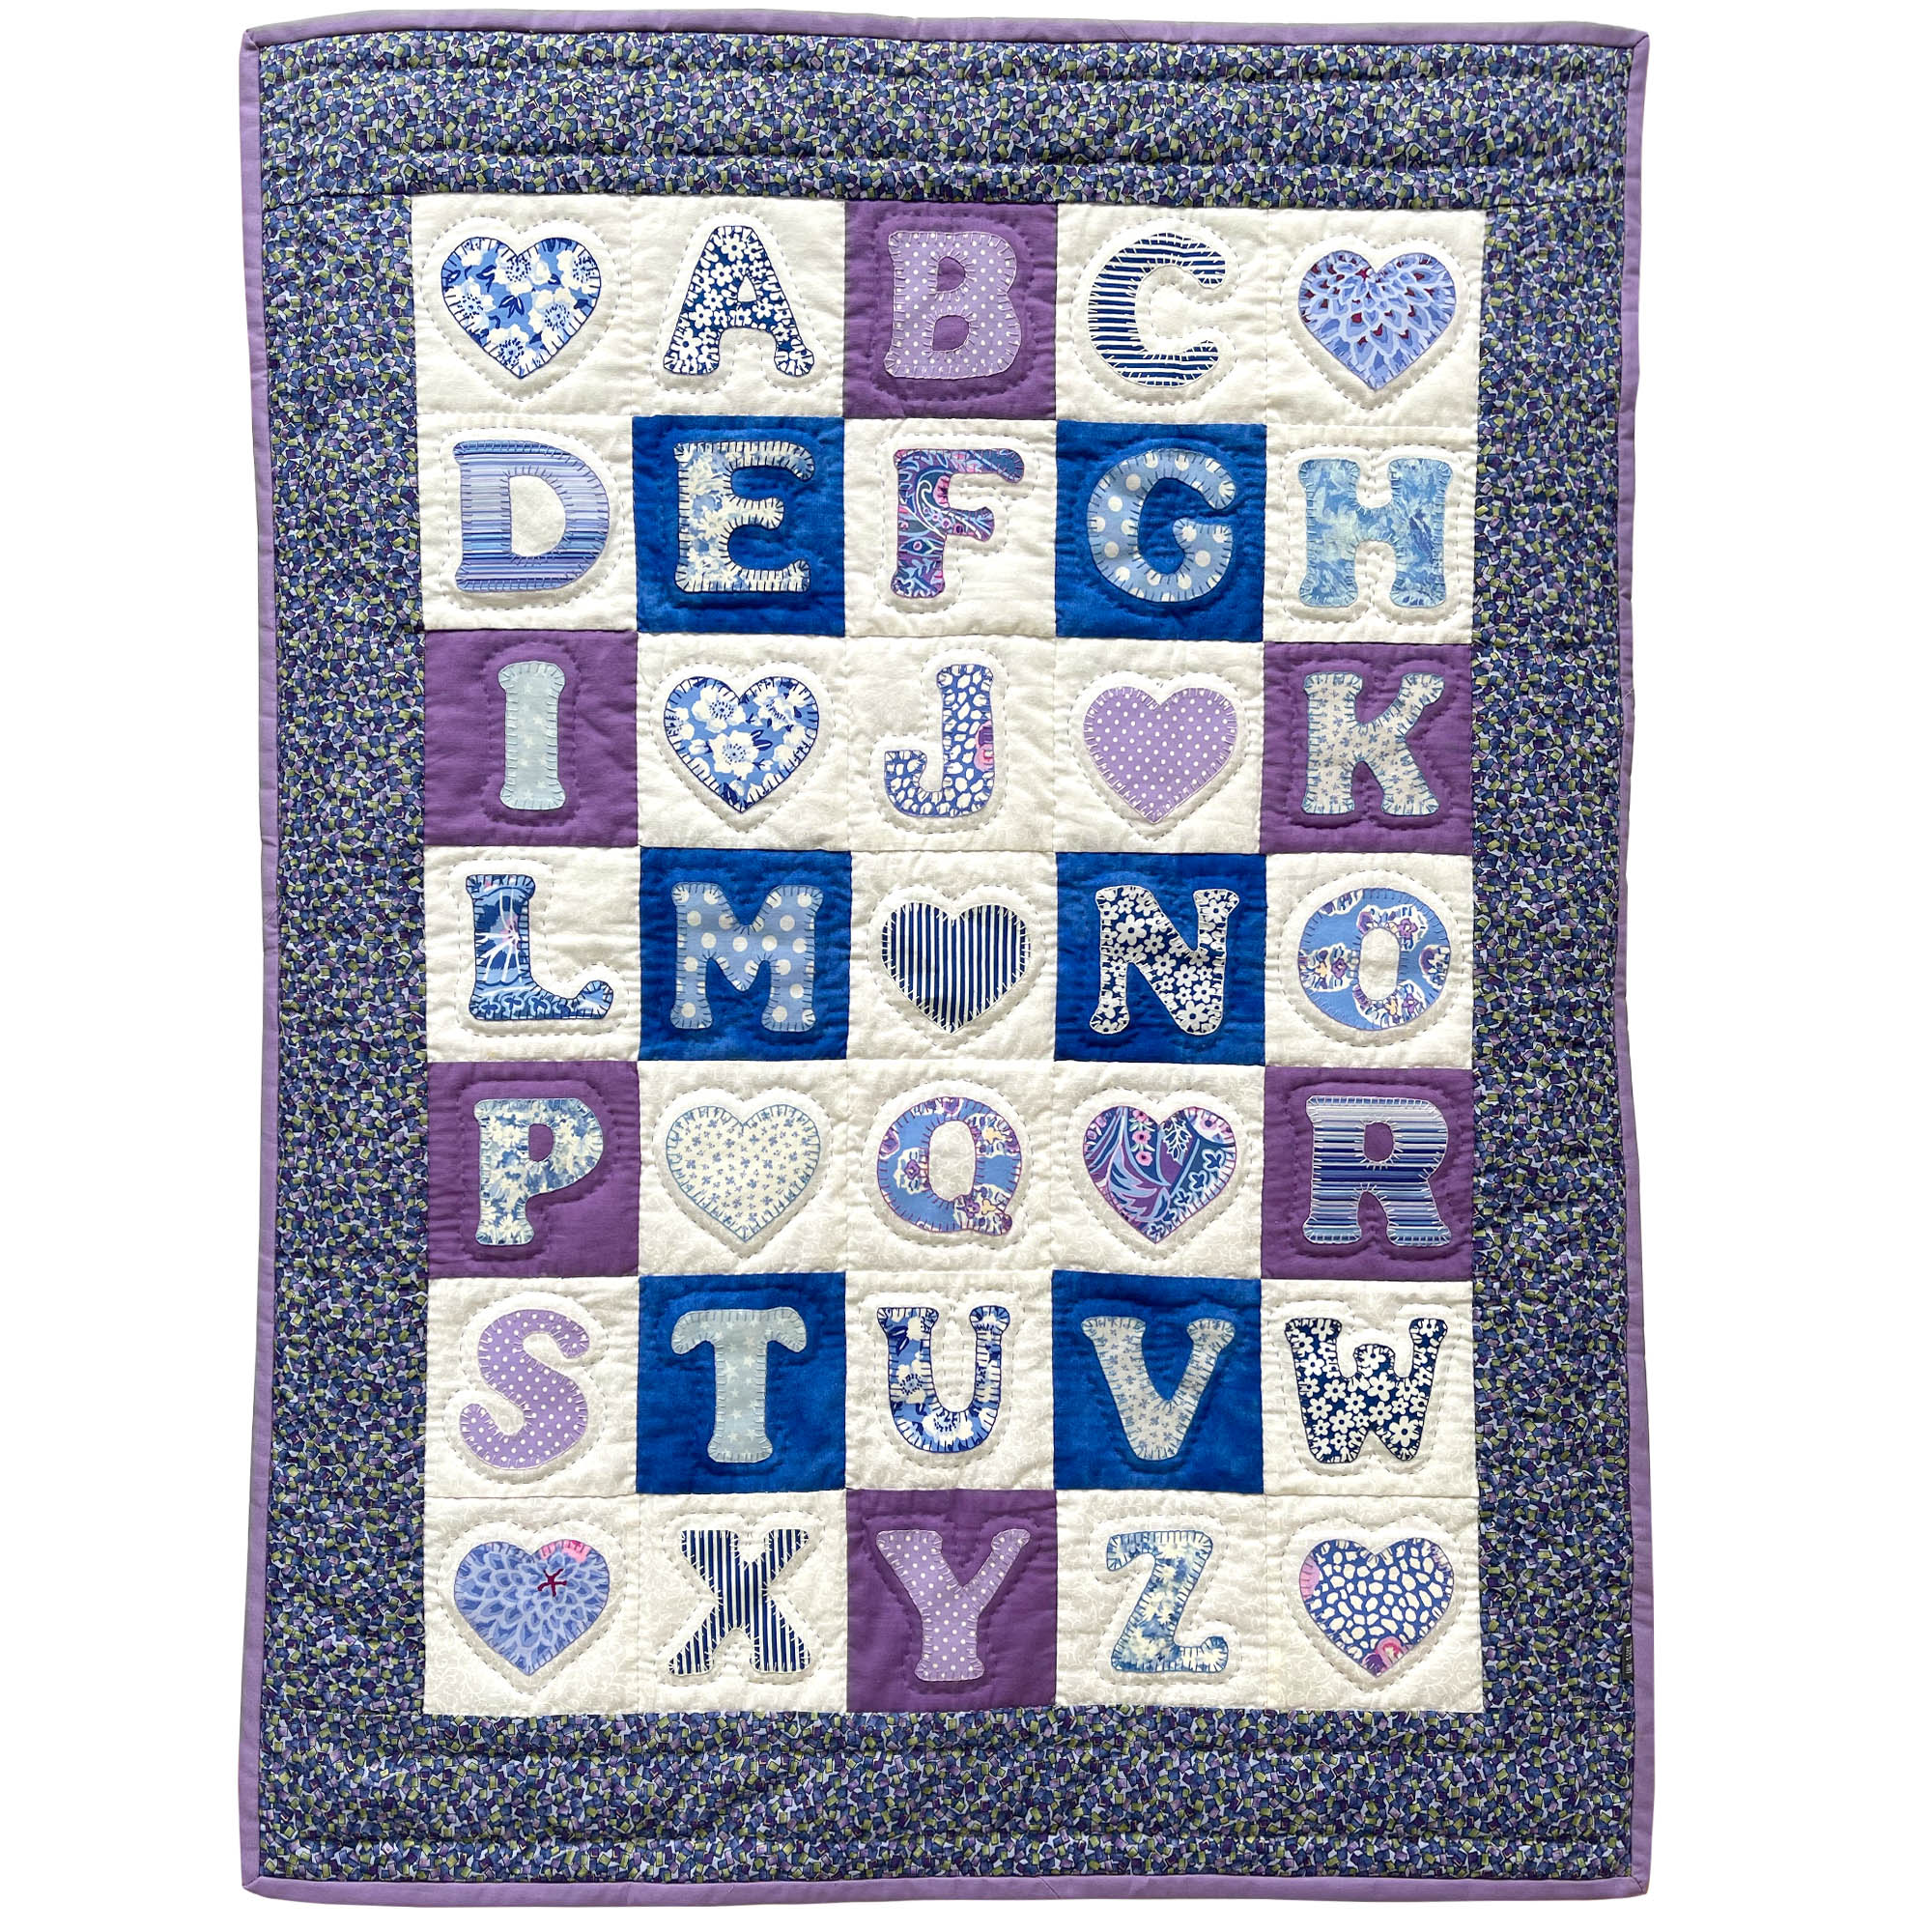 Children's Handmade Quilt Alphabet Blue and Purple Floral